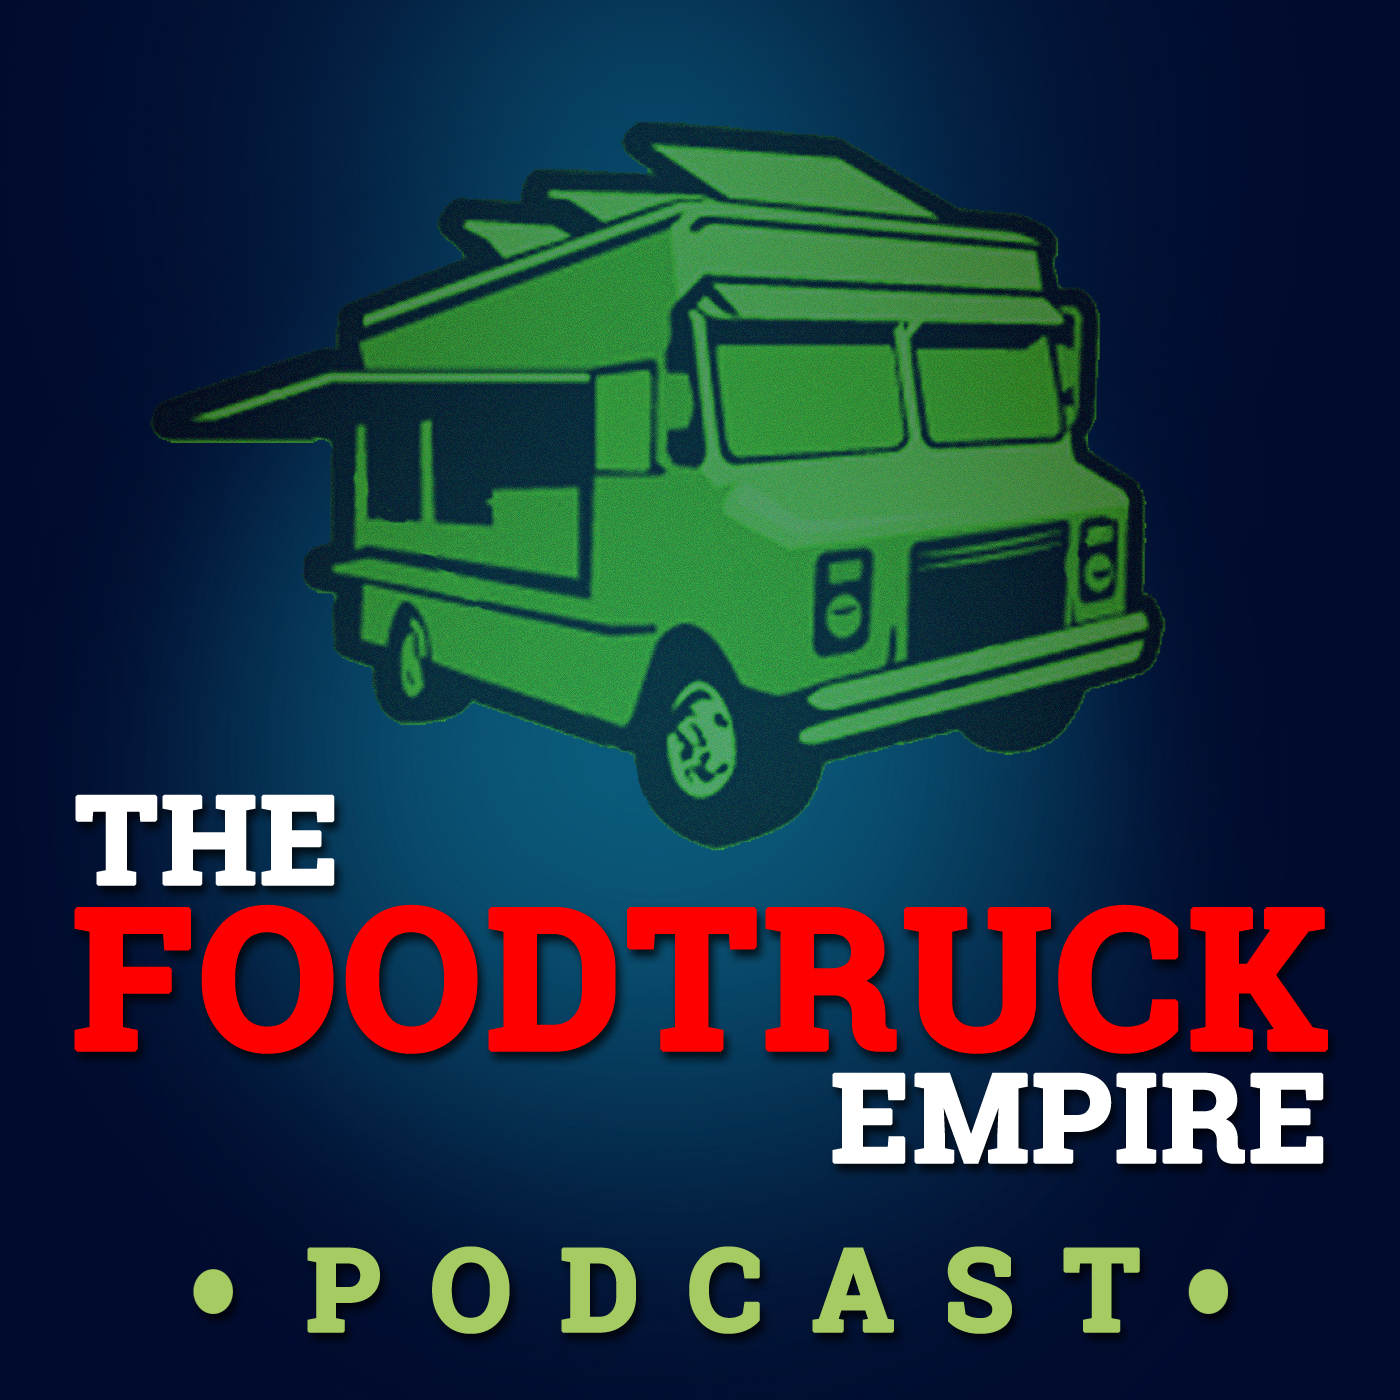 FoodTruckEmpire Podcast – How to Start a Profitable Food Truck Business